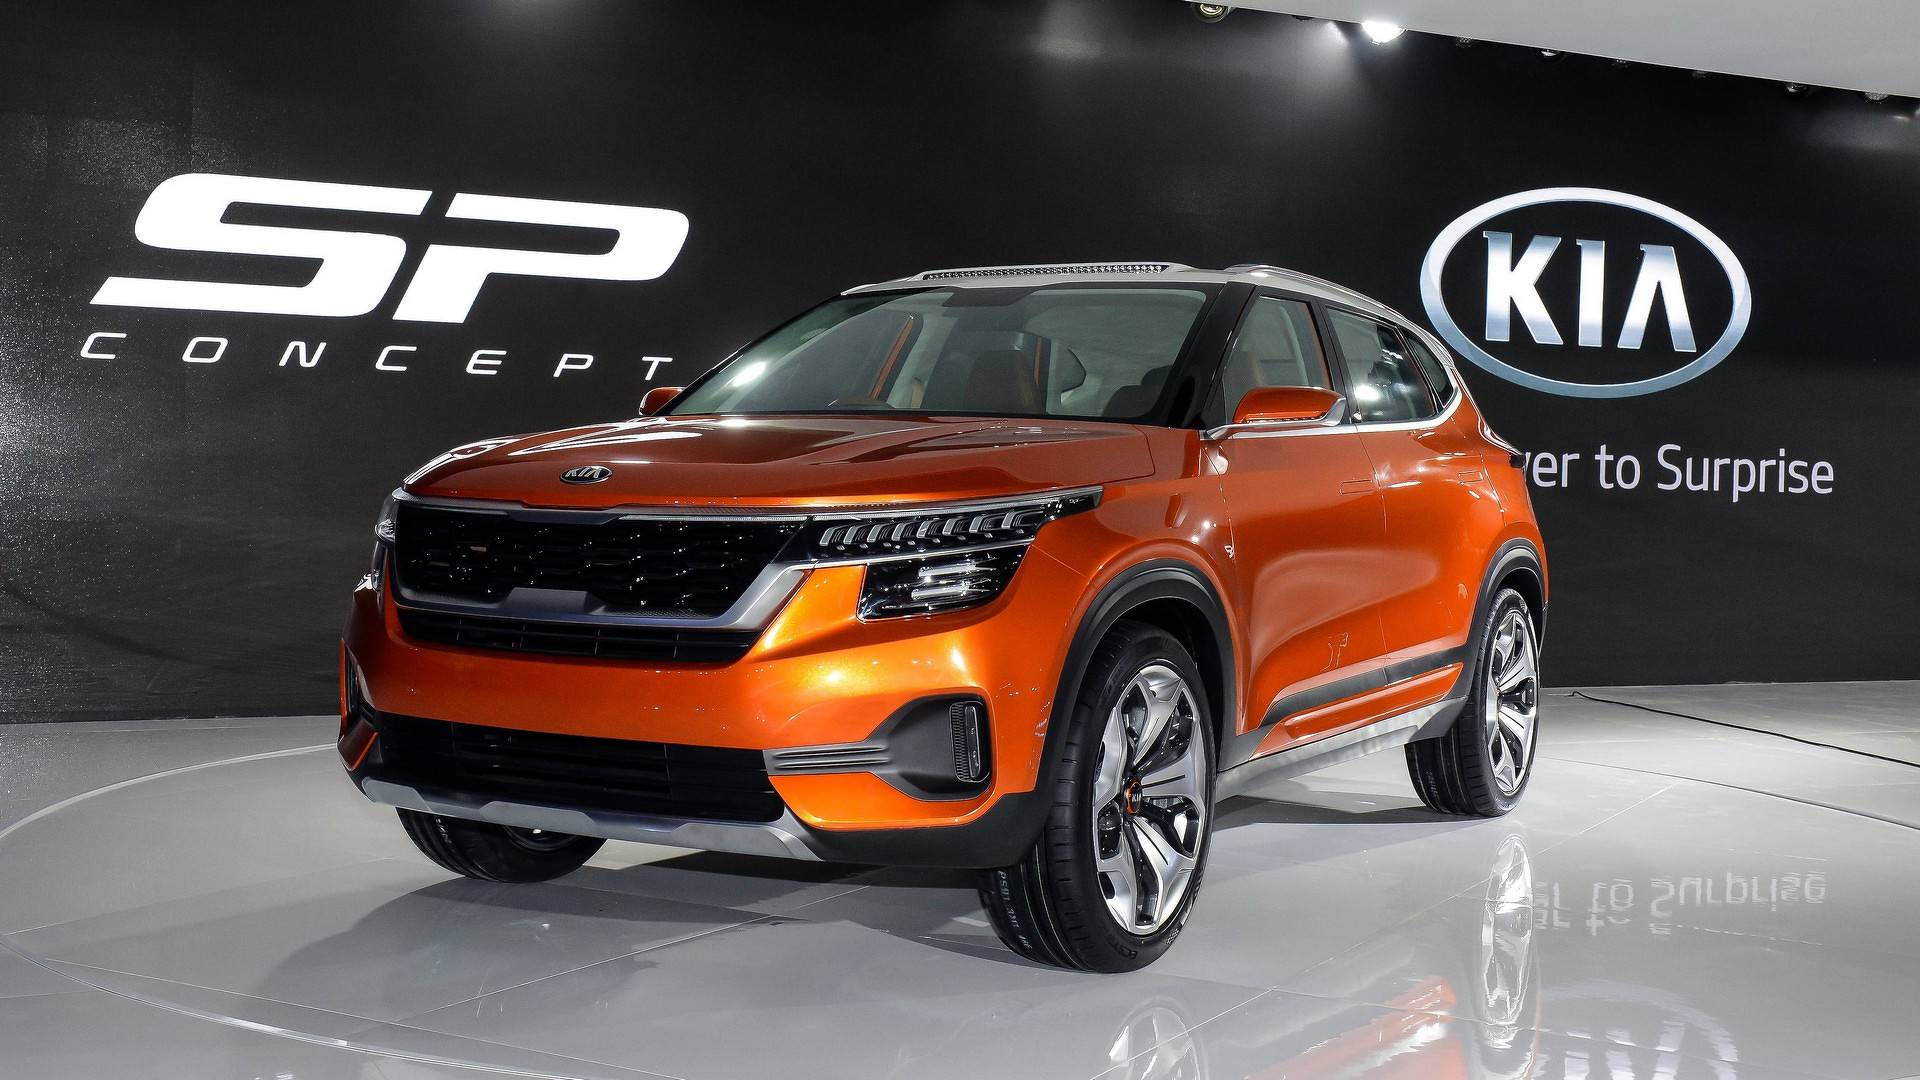 Kia Compact Crossover Confirmed For U.S. Launch Next Year